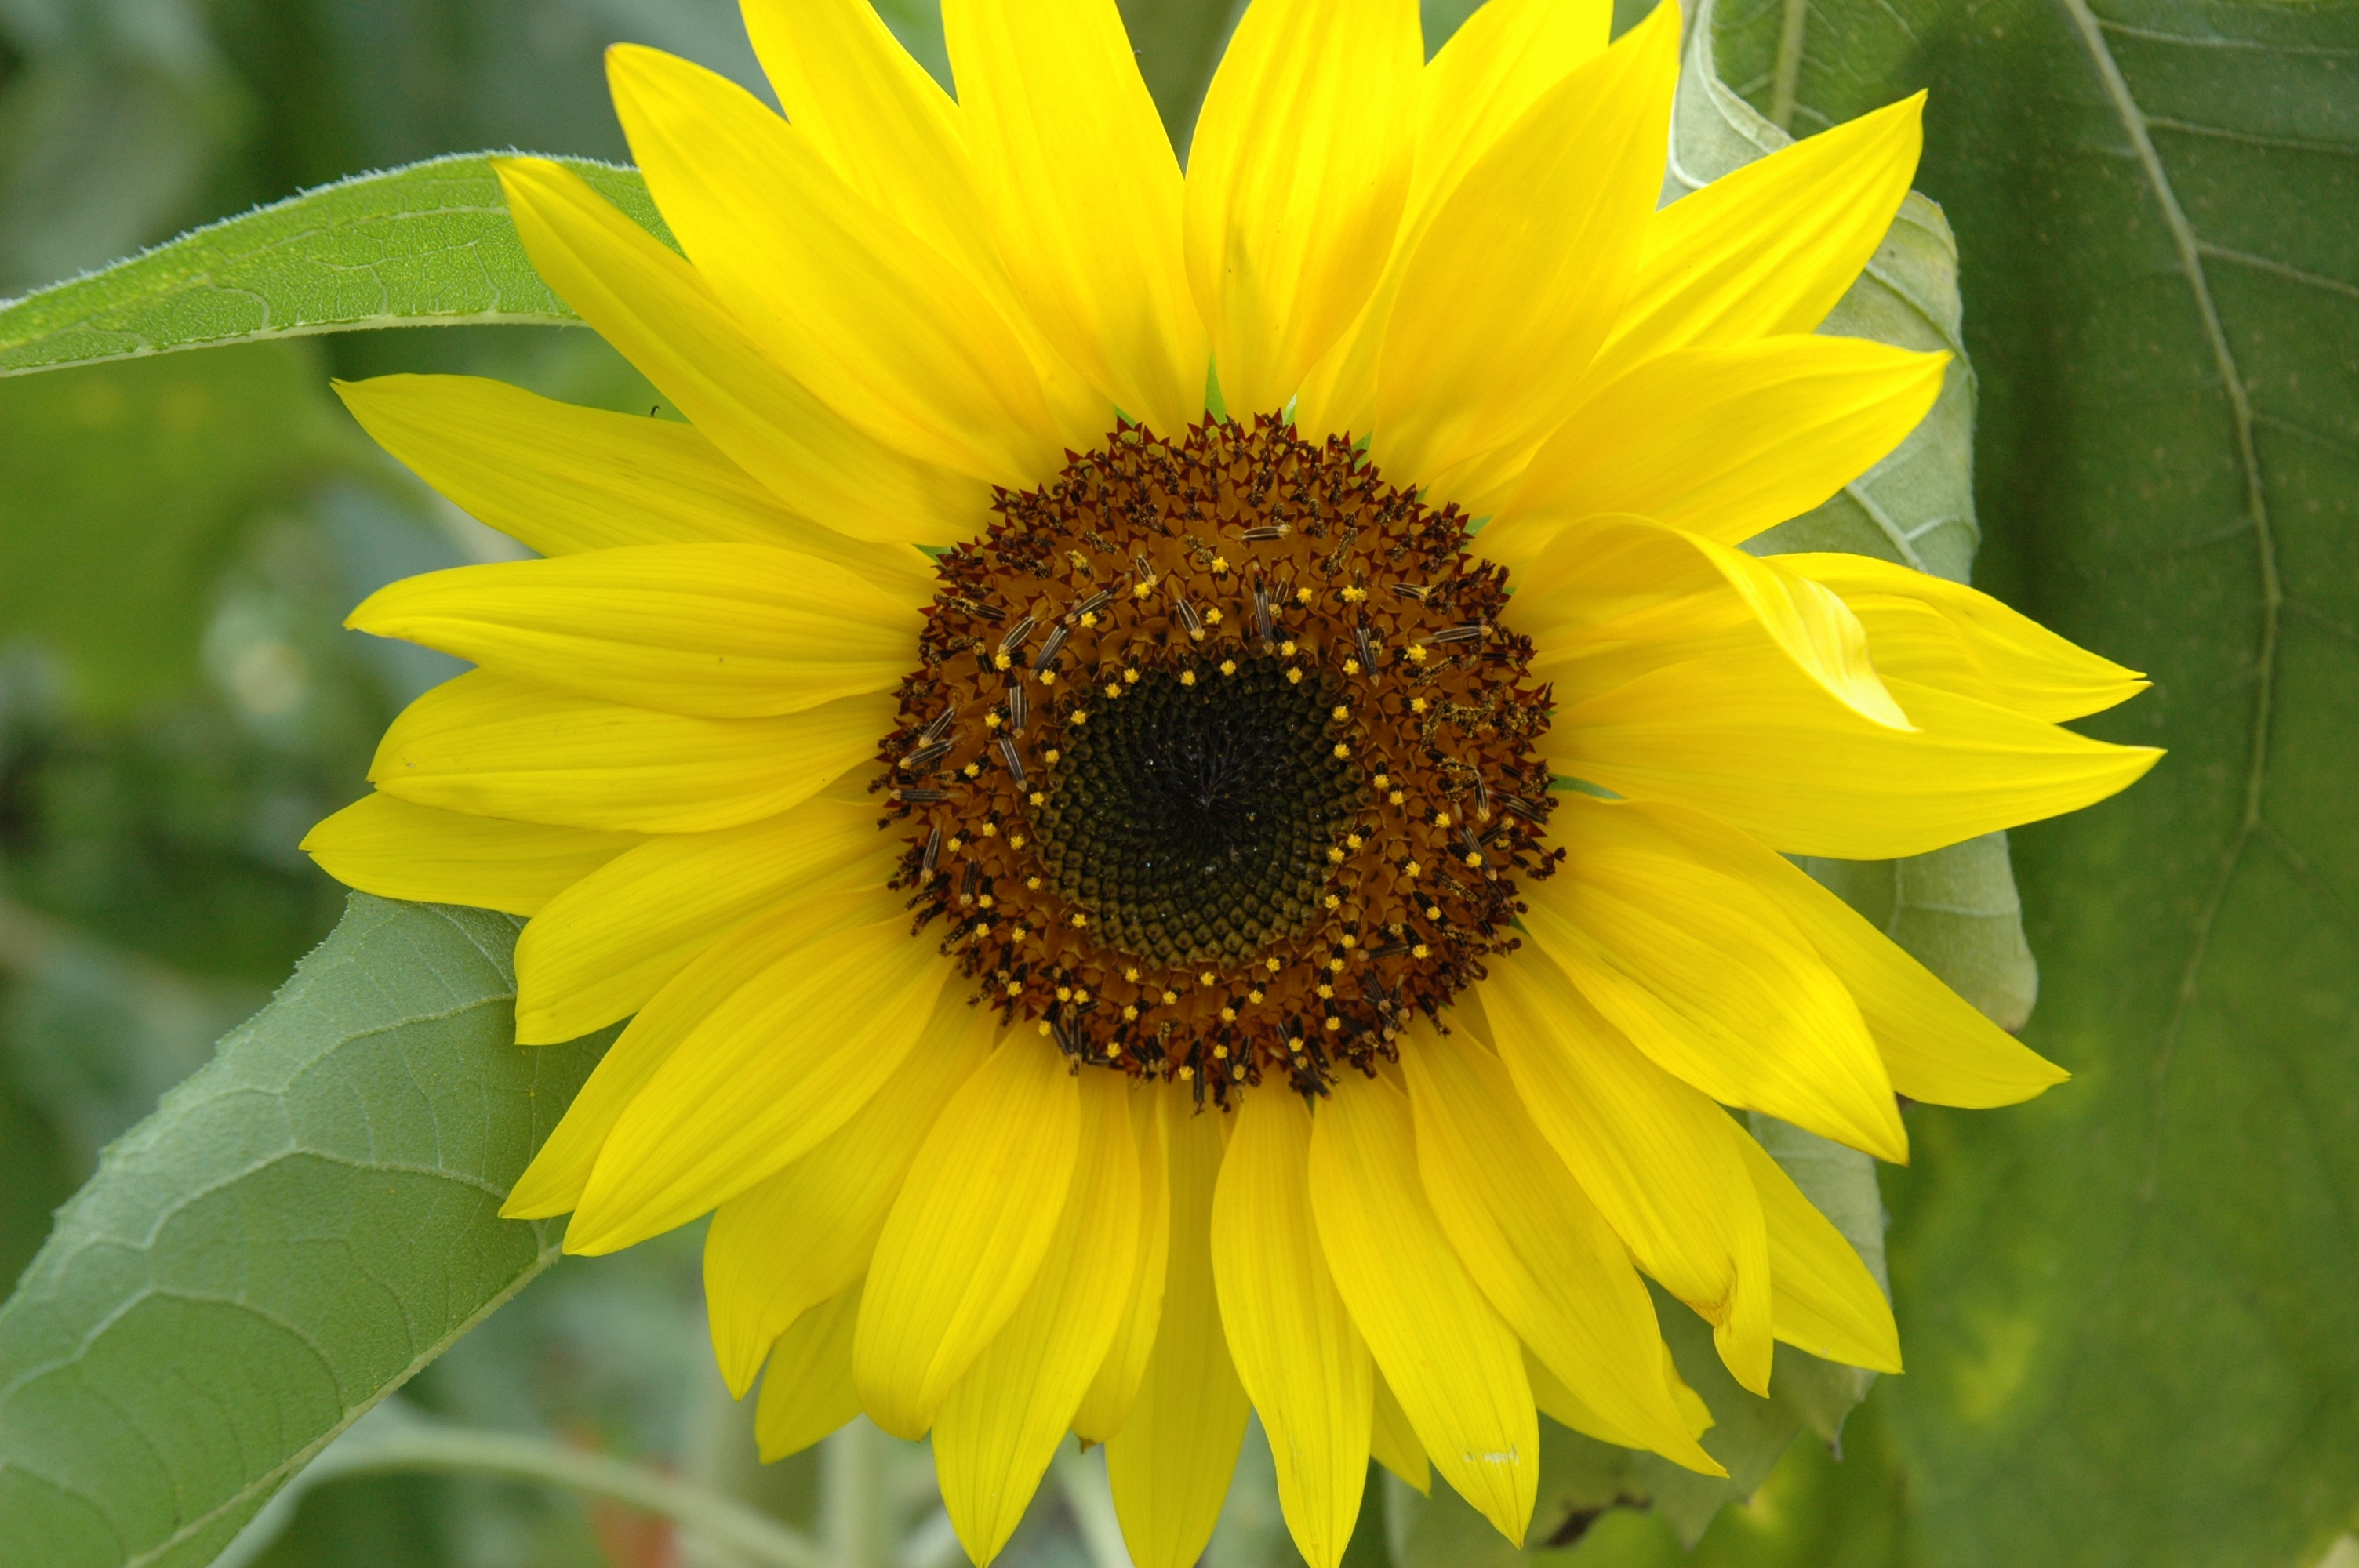 How to Grow Sunny Sunflowers | Flea Market Gardening